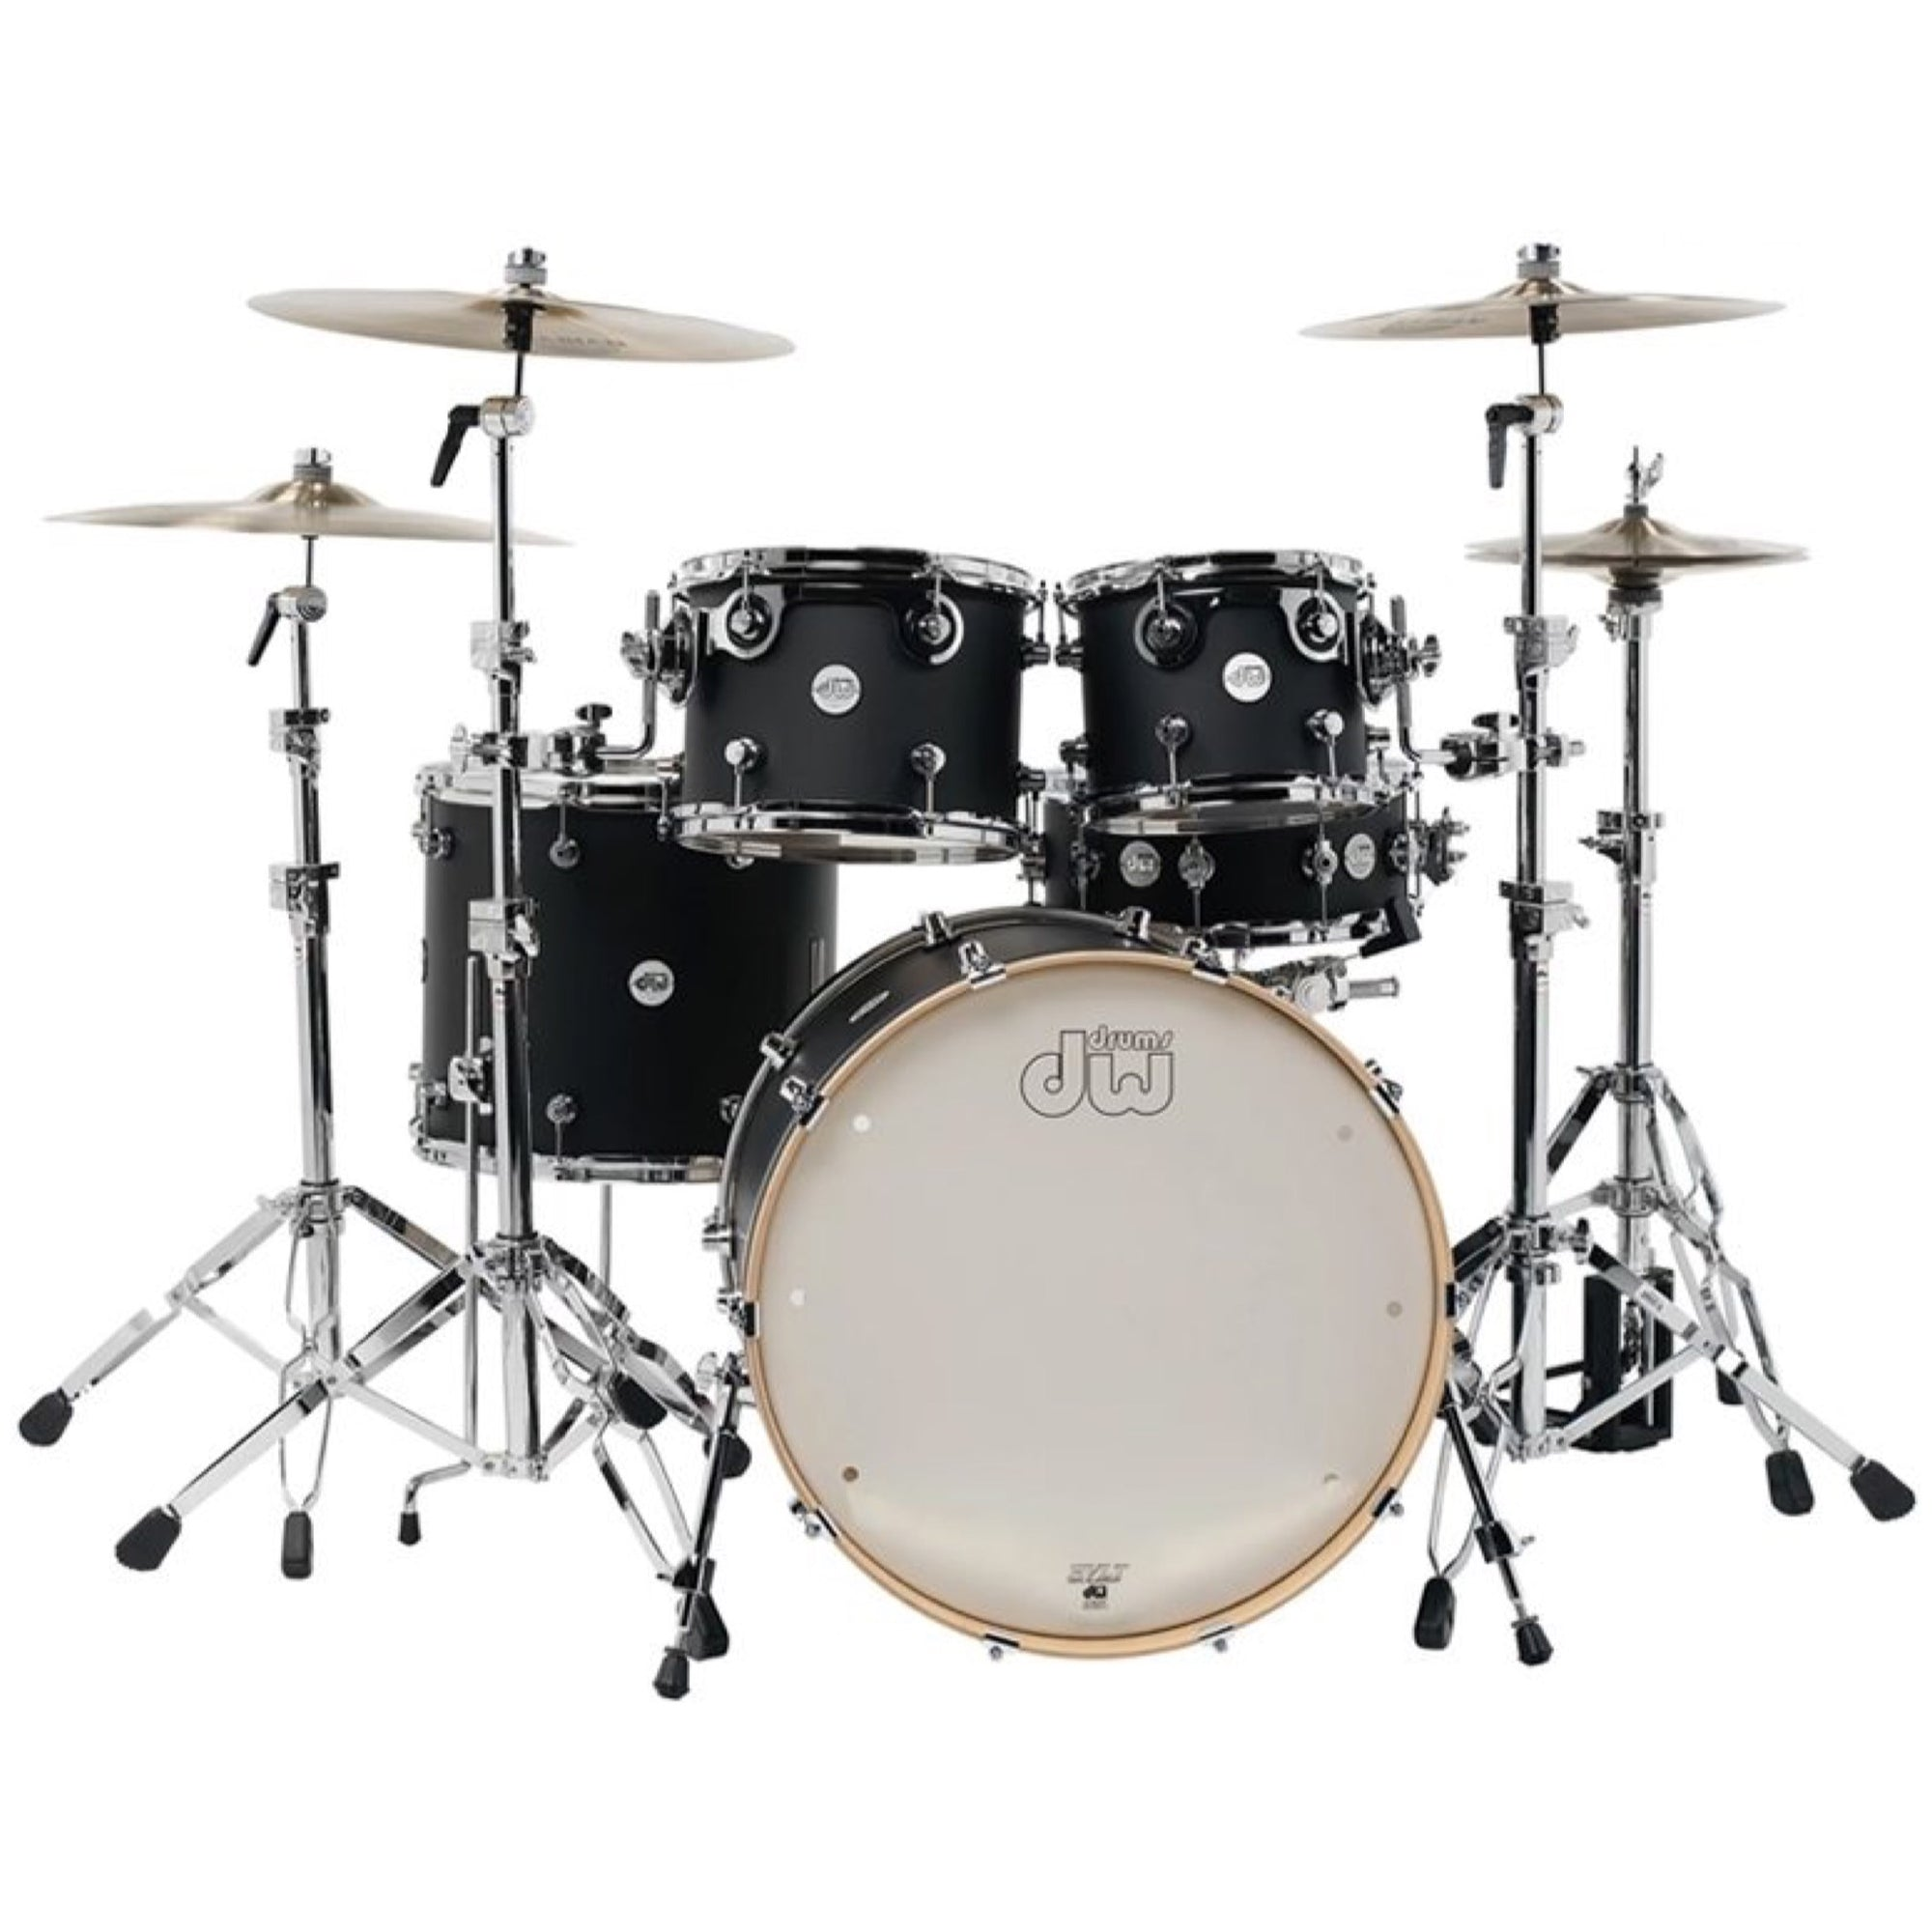 Drum Workshop DDLM2215 Design Series Drum Shell Kit, 5-Piece, Black